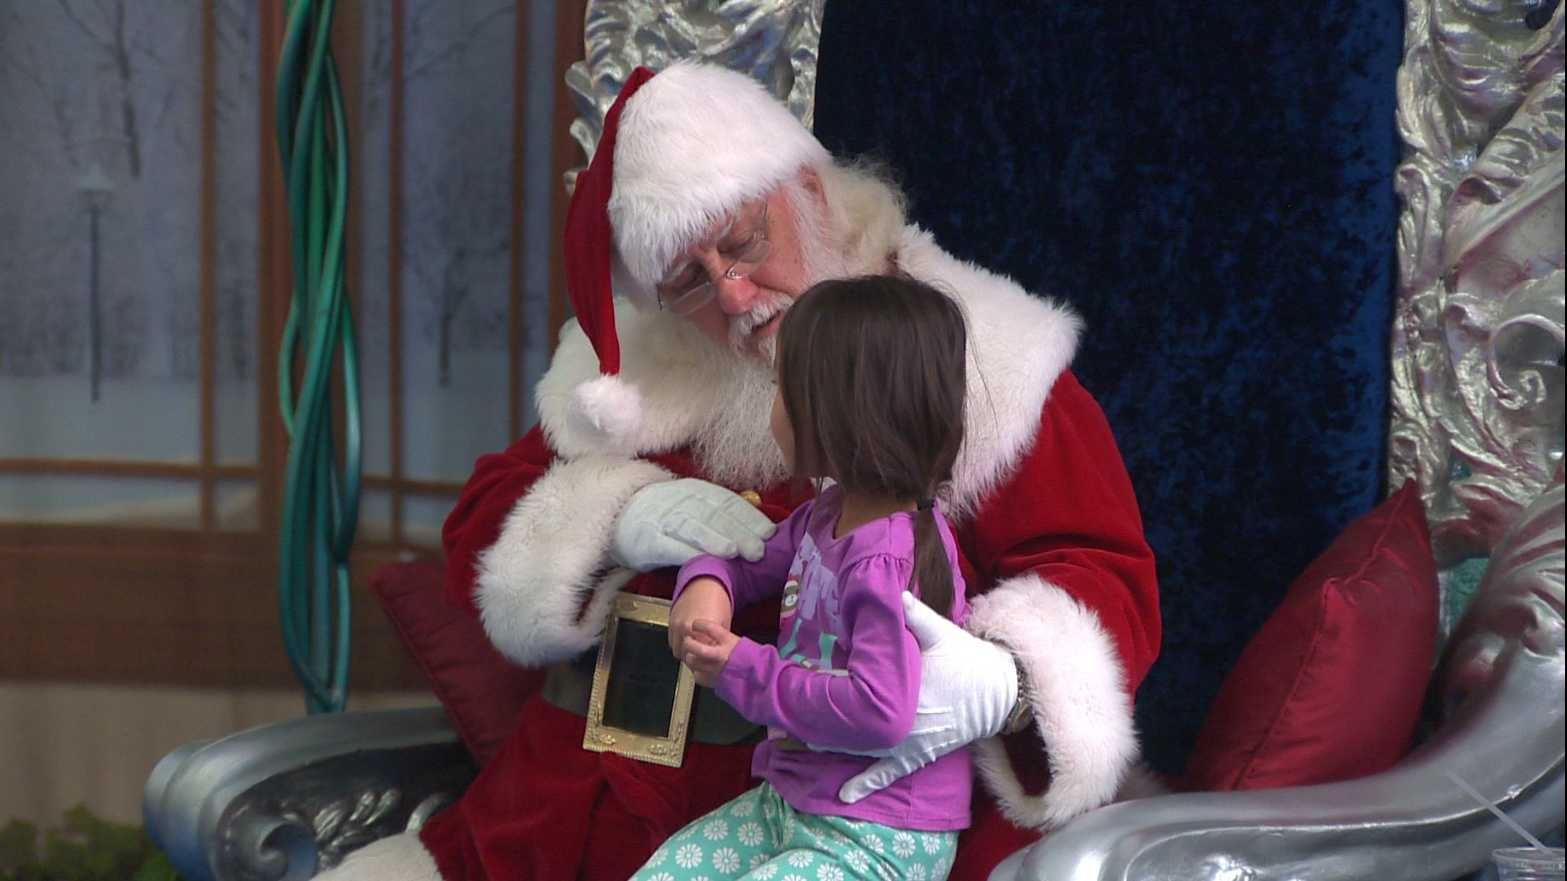 Santa talks to a little girl at Arden Fair Mall on Wednesday, Nov. 11, 2015.